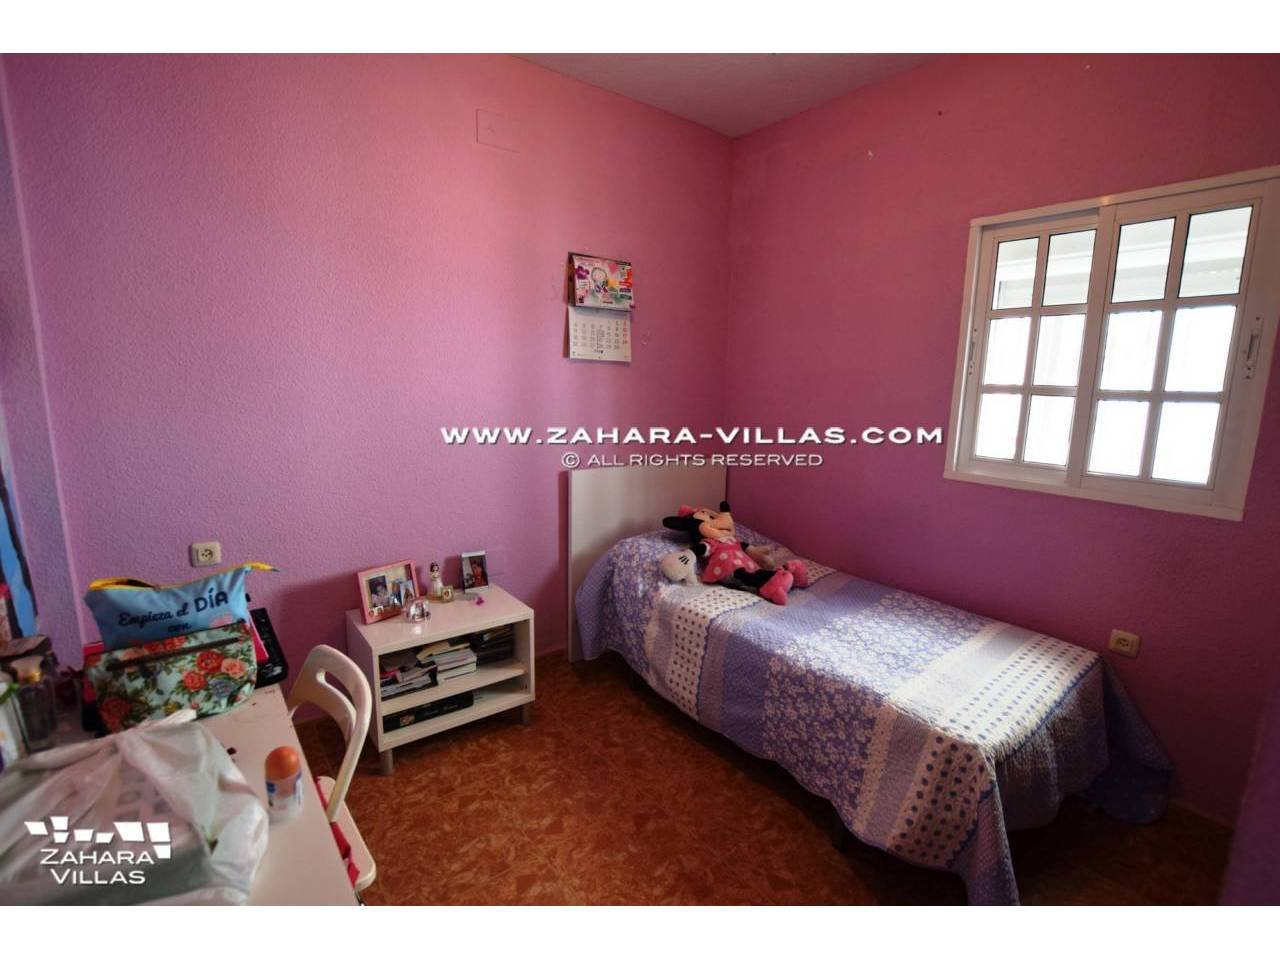 Imagen 13 de House in Avda. Del Pradillo for sale in the town of Zahara de los Atunes